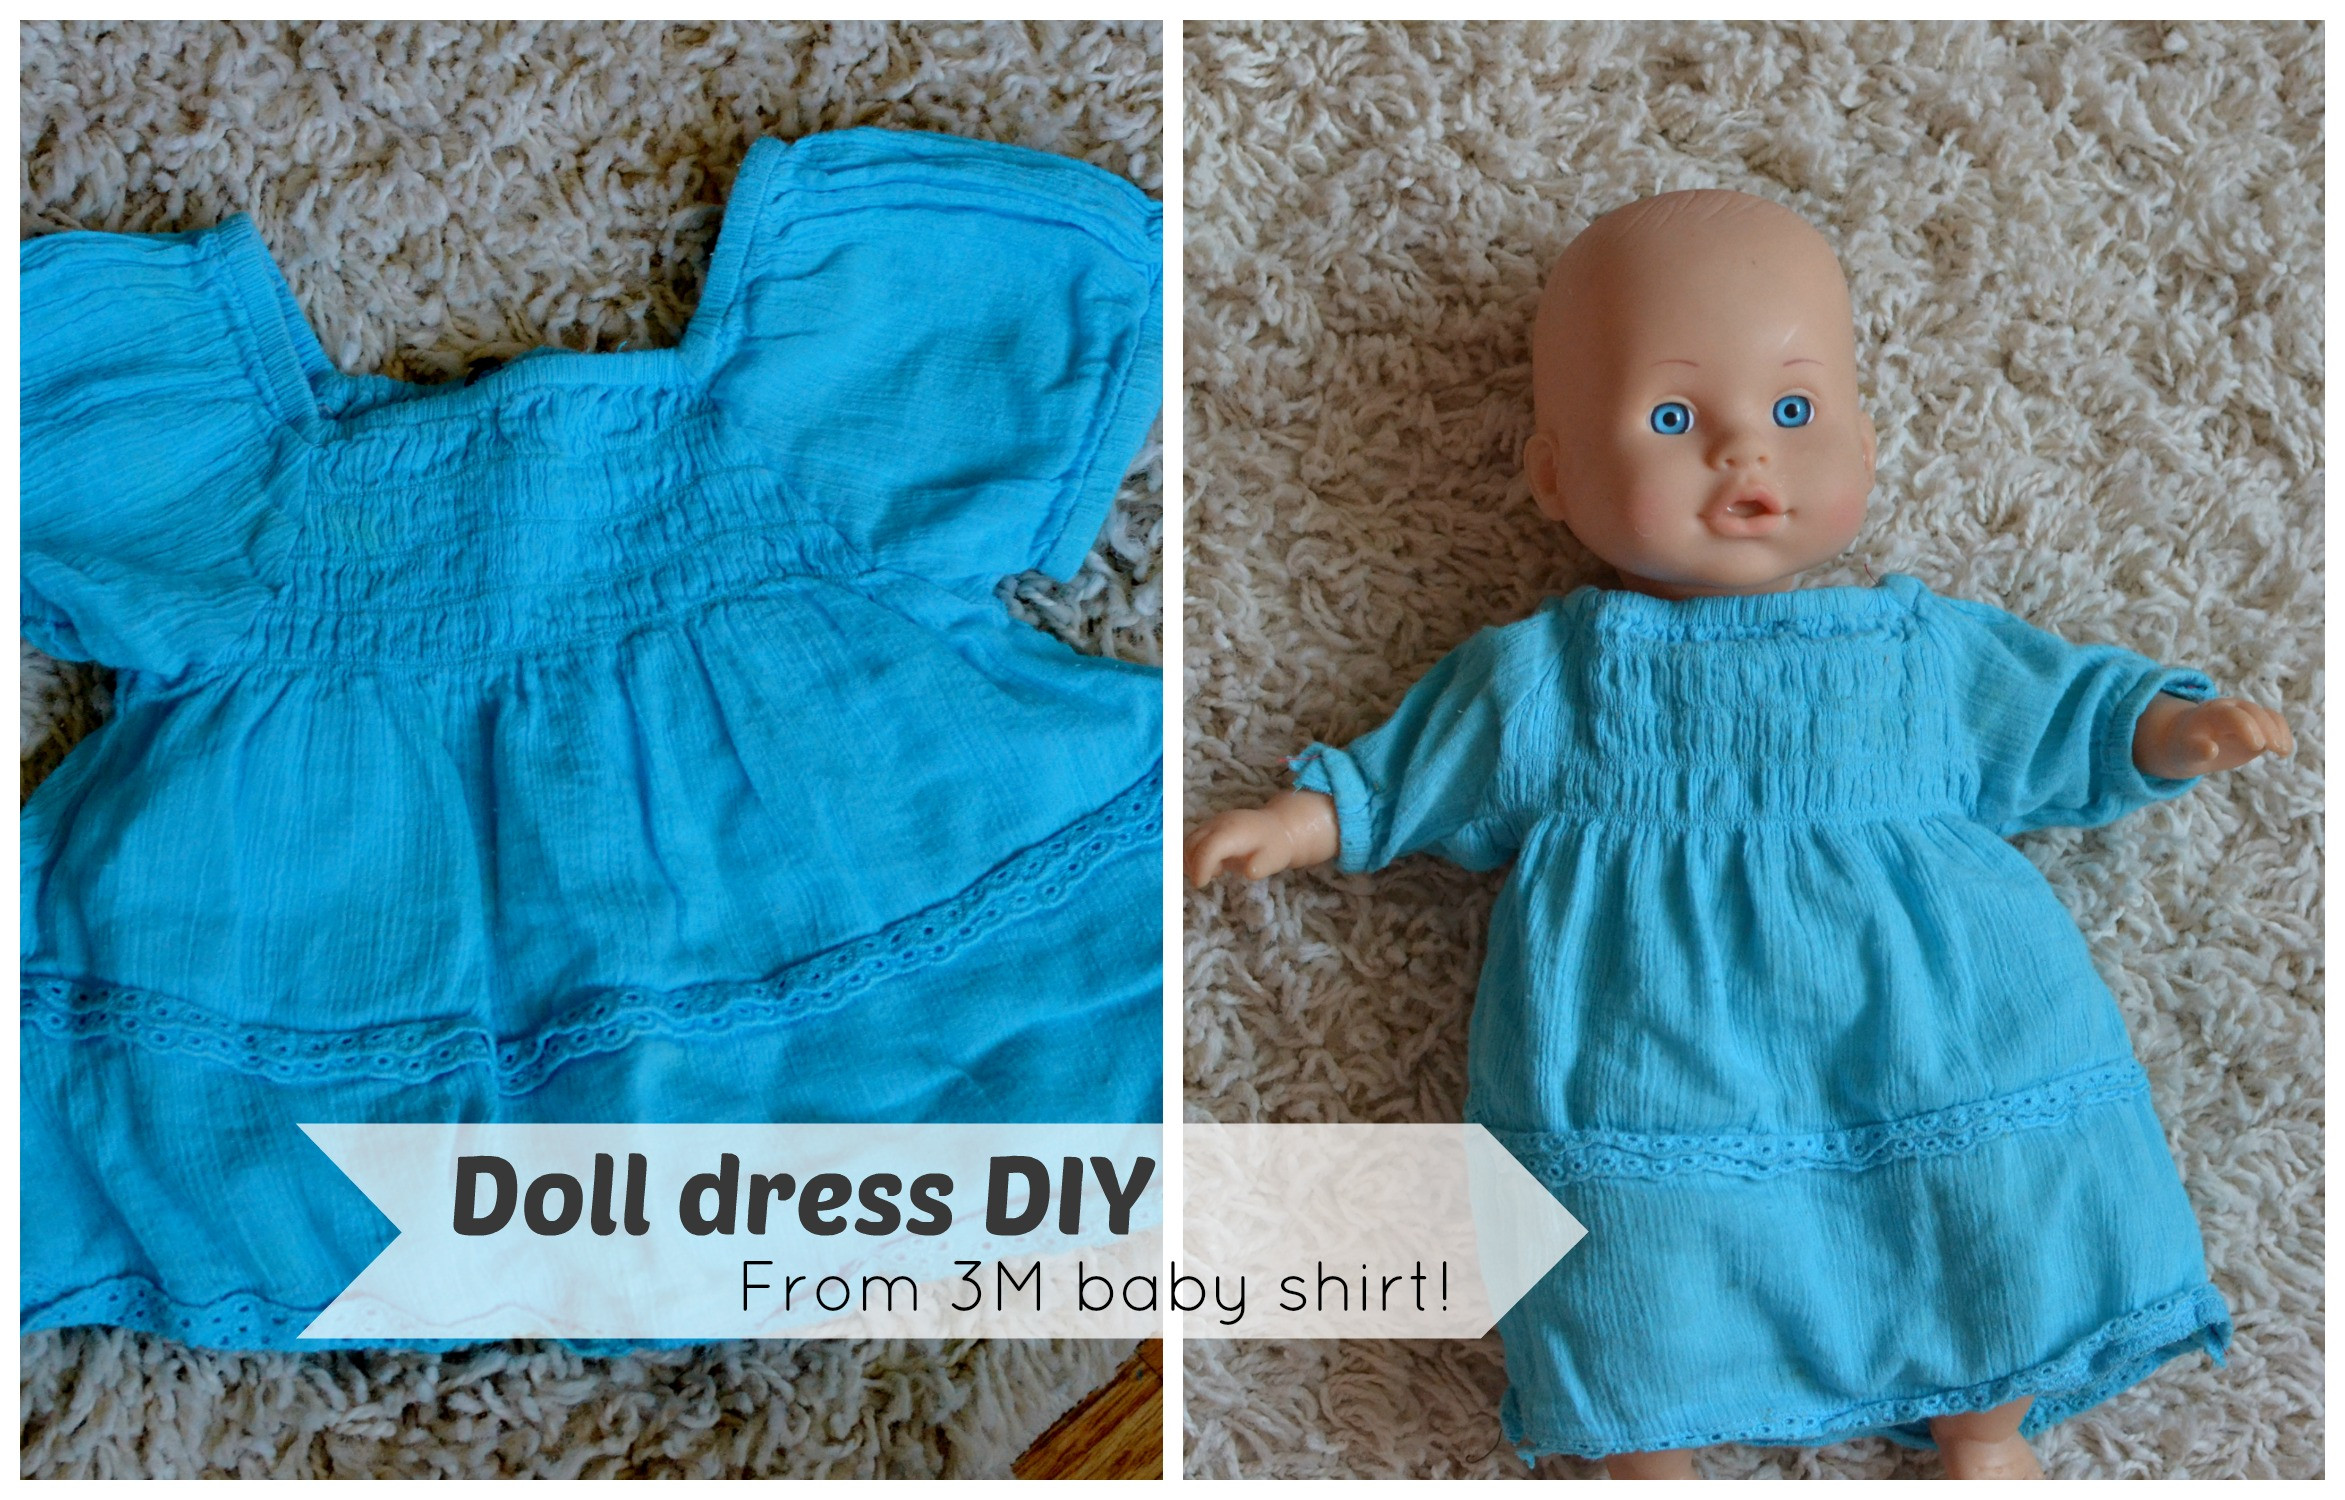 Best ideas about DIY Baby Doll . Save or Pin Super Easy DIY Baby Doll Dress Now.